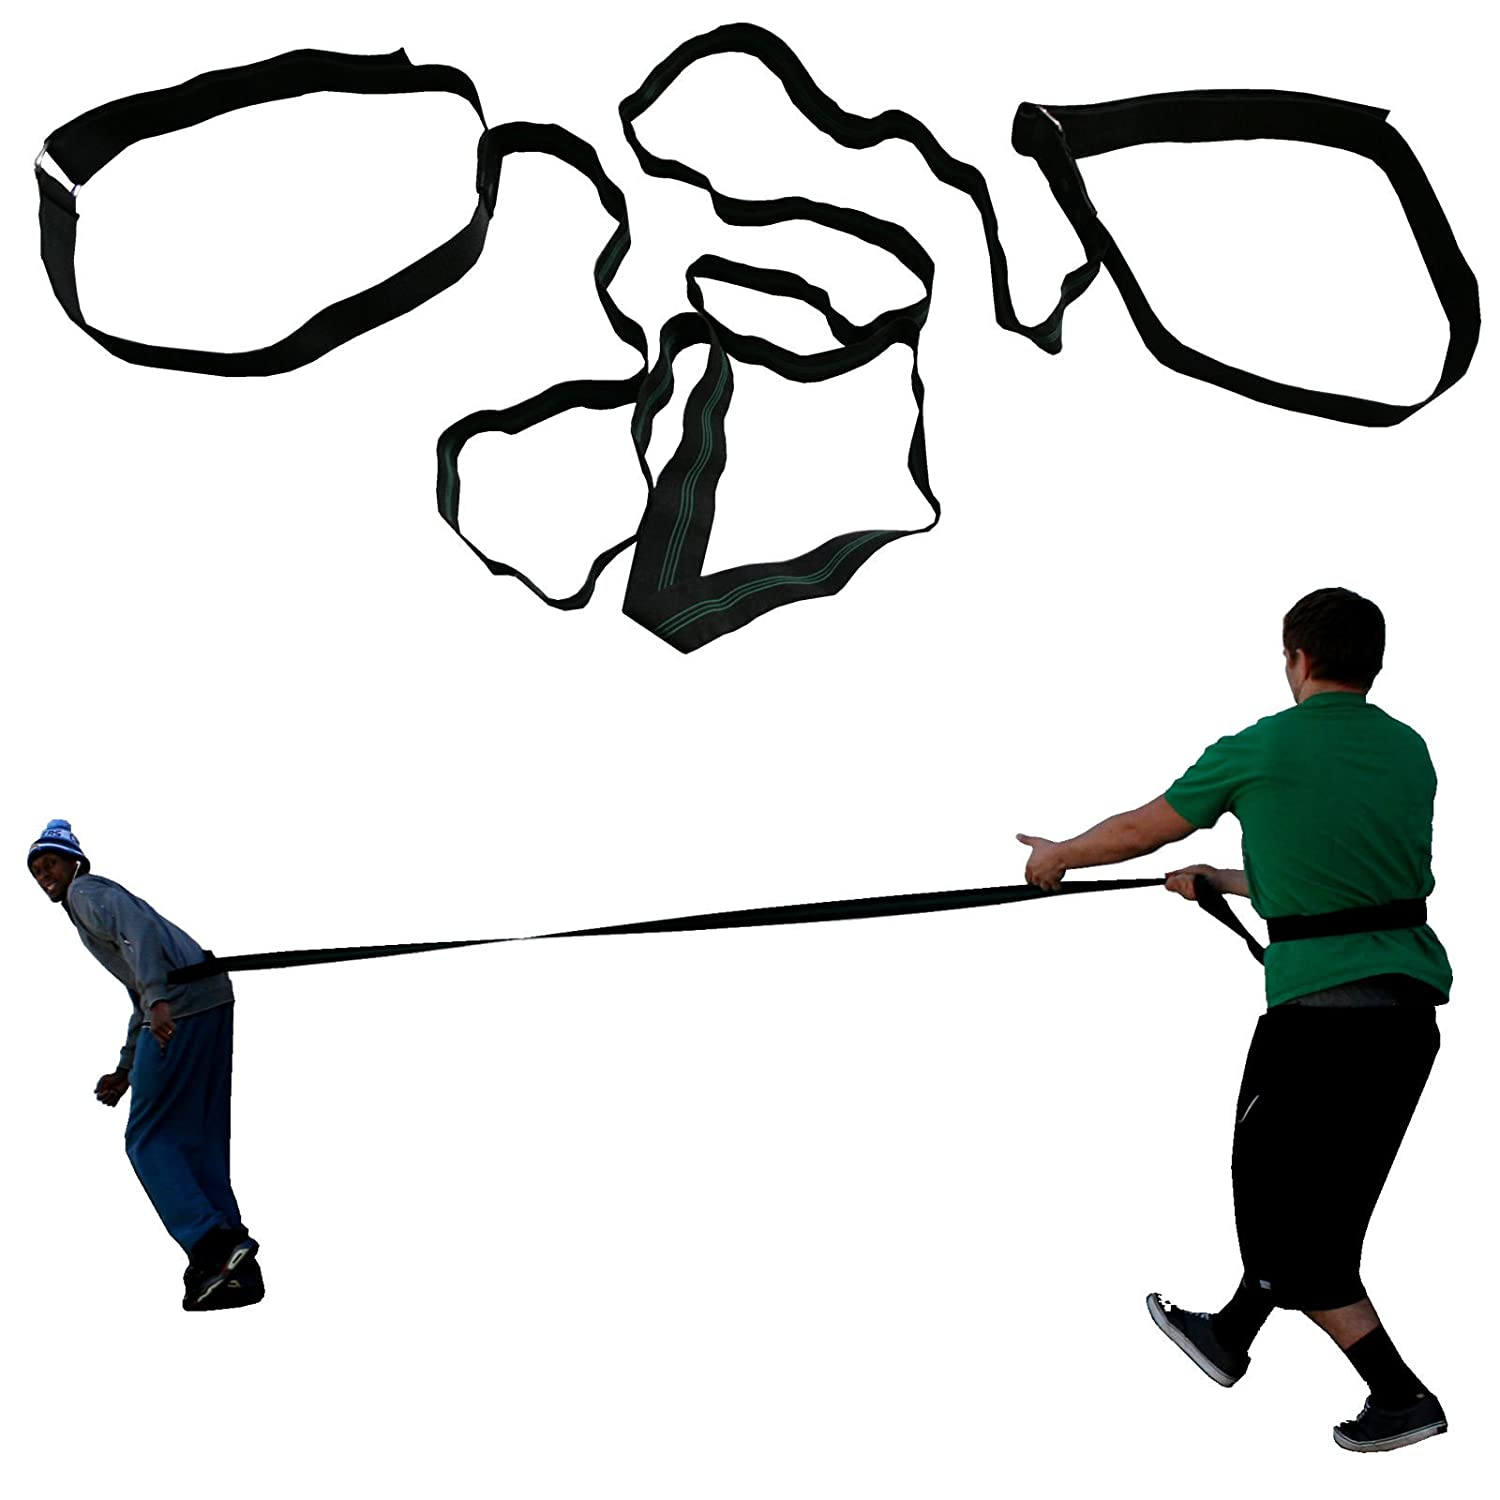 amazon two person heavy resistance band leap frog speed tether War Thunder Toys amazon two person heavy resistance band leap frog speed tether resistance sports outdoors